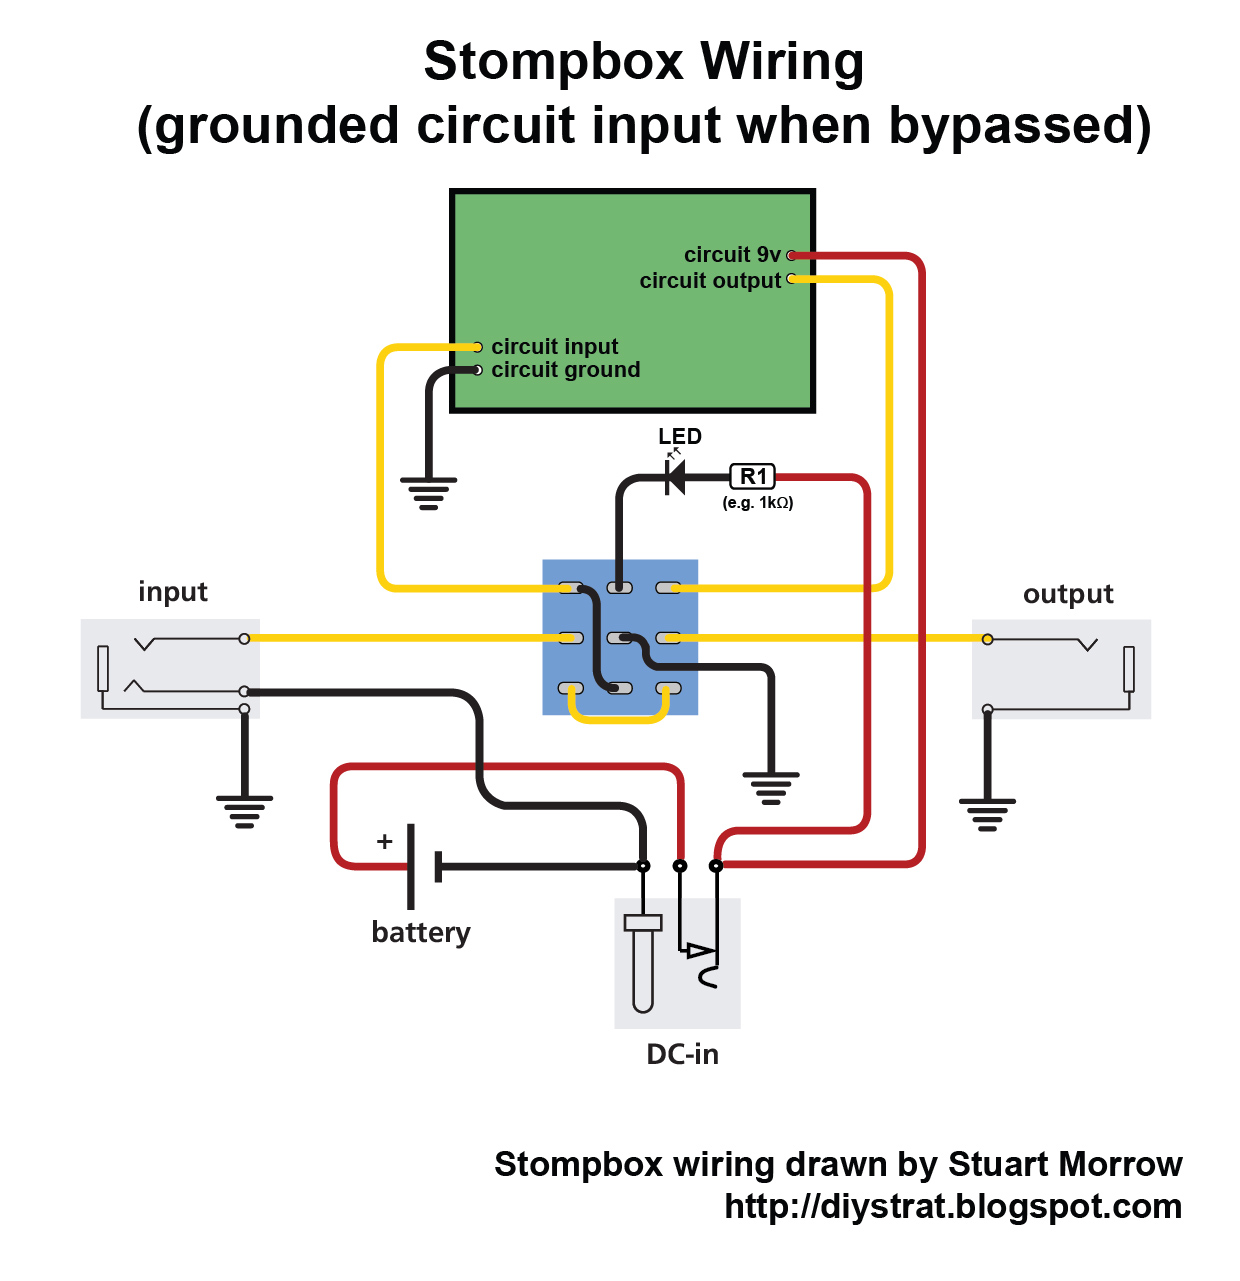 stomp box wiring harness wiring diagrams stomp box wiring harness wiring diagrams schema wiring harness diagram [ 1240 x 1281 Pixel ]